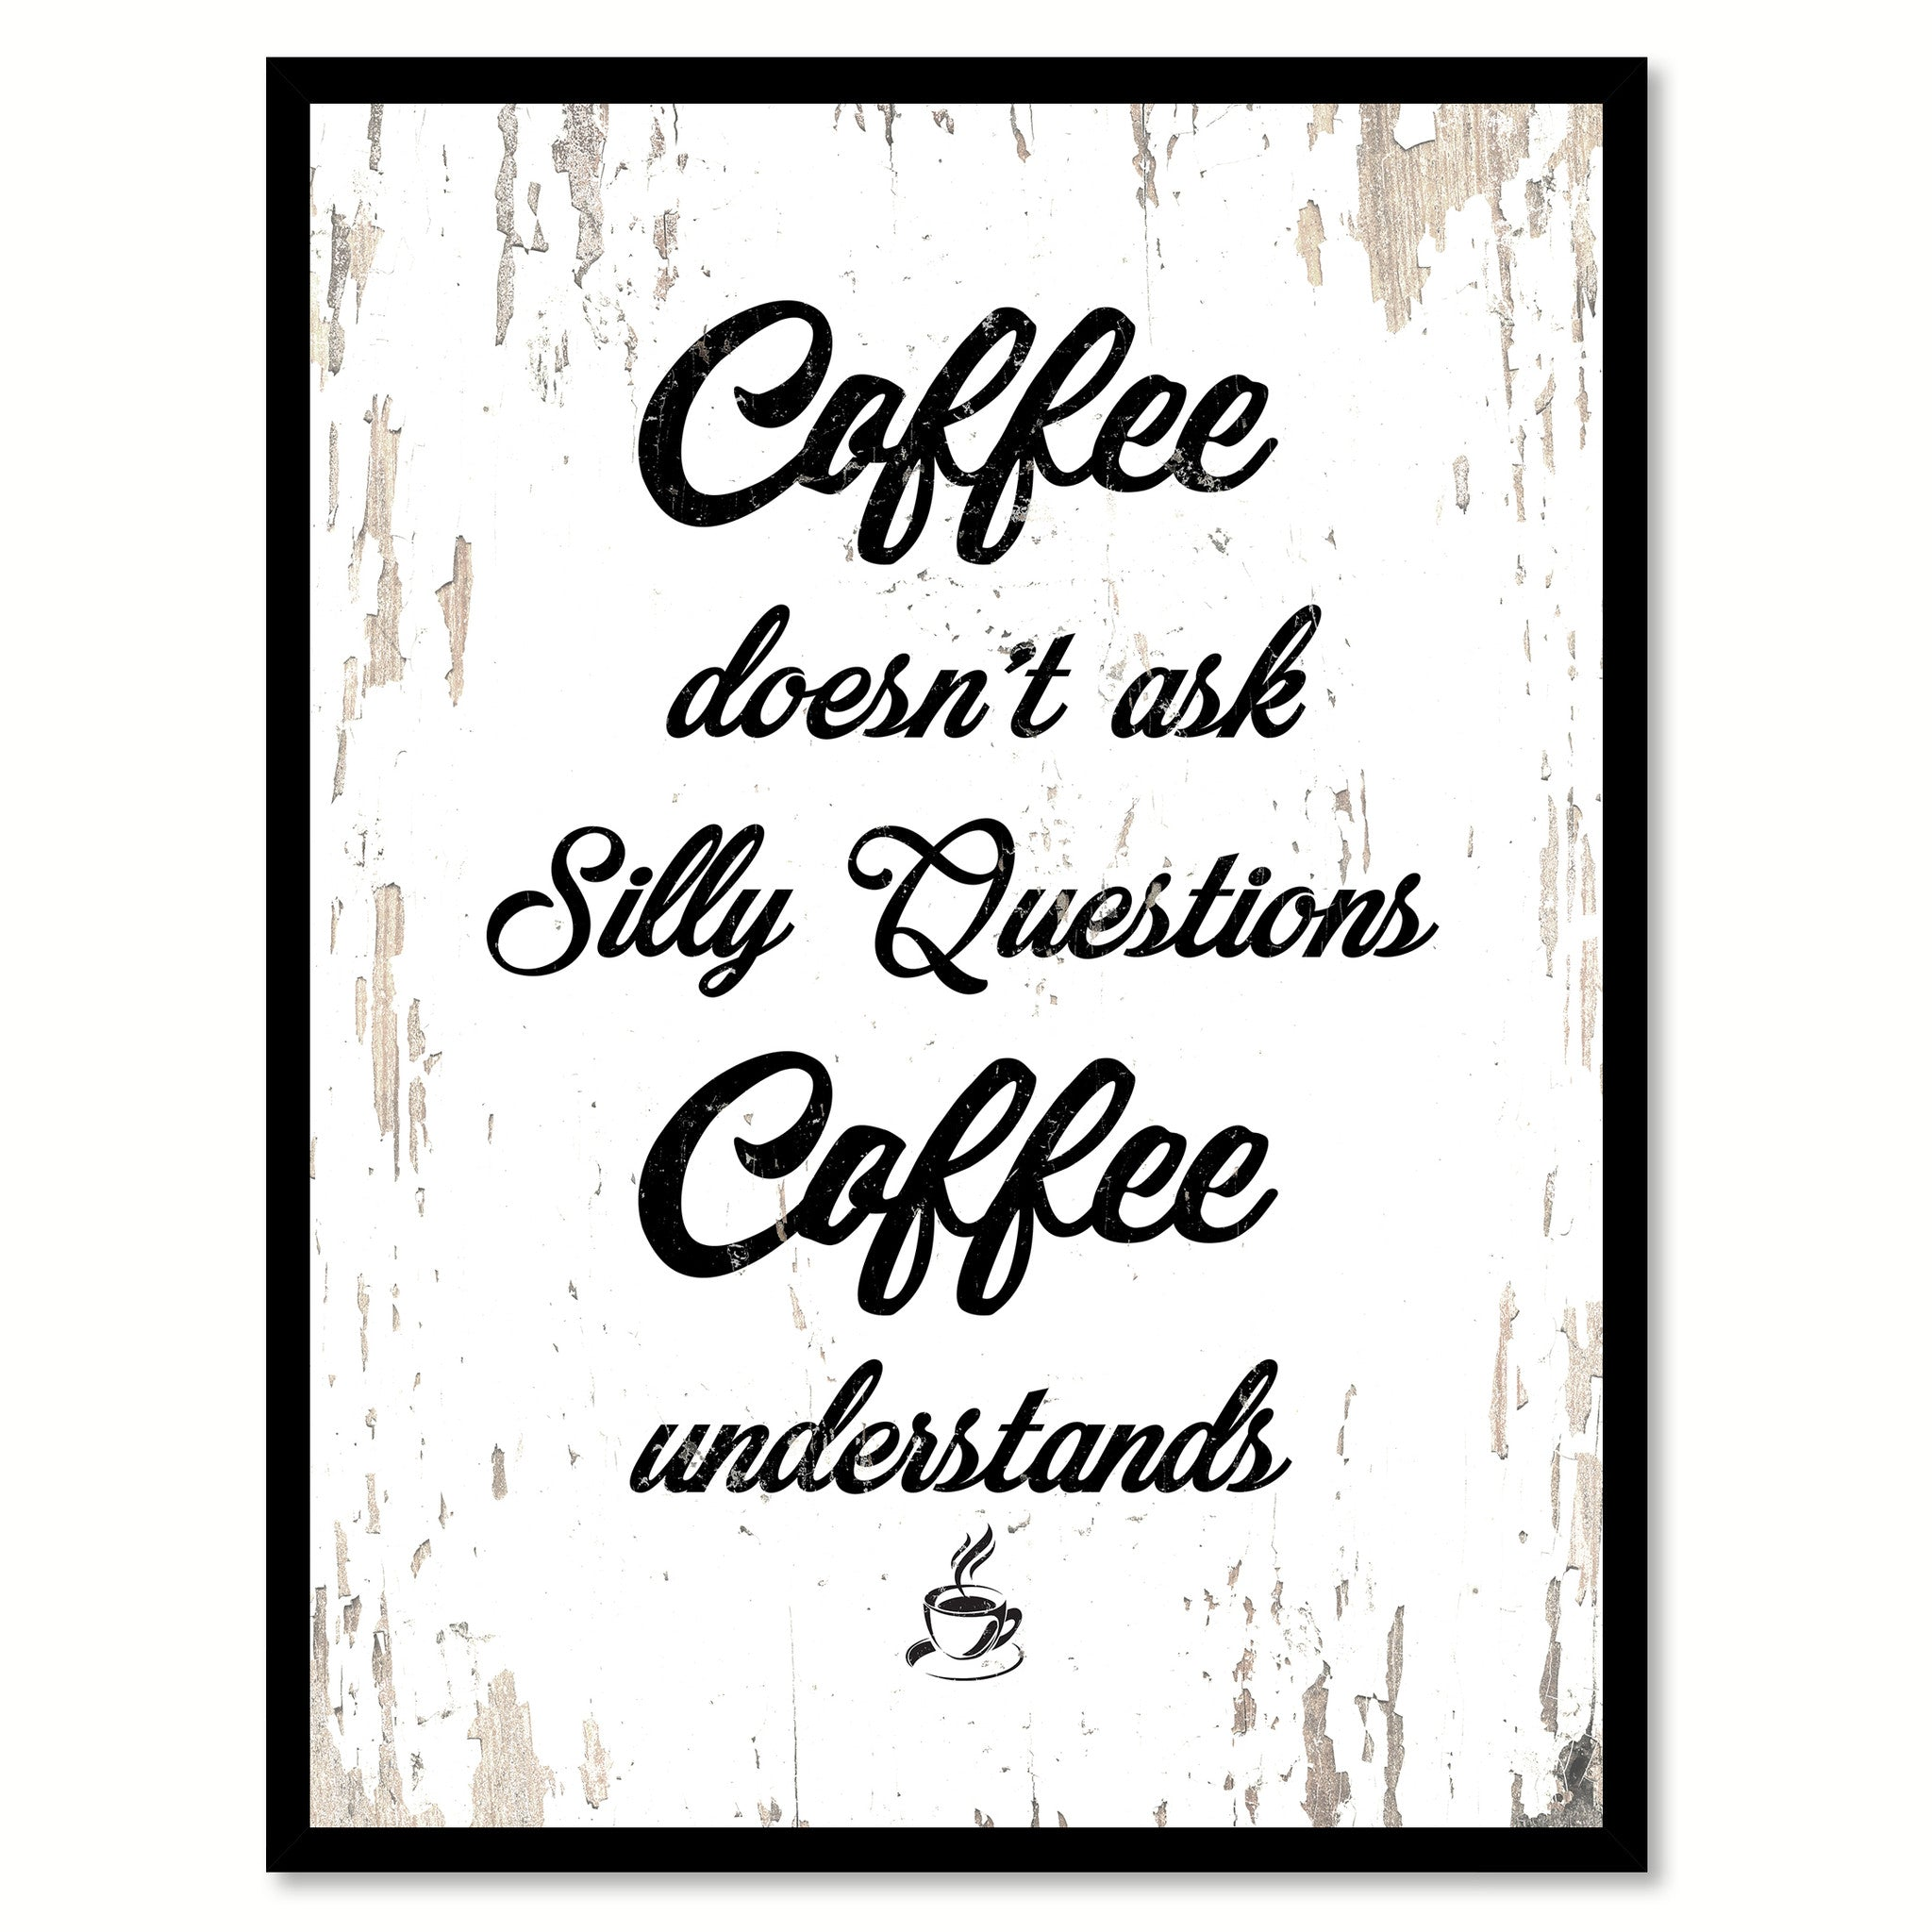 Coffee Doesn't Ask Silly Questions Coffee Understands Quote Saying Canvas Print with Picture Frame